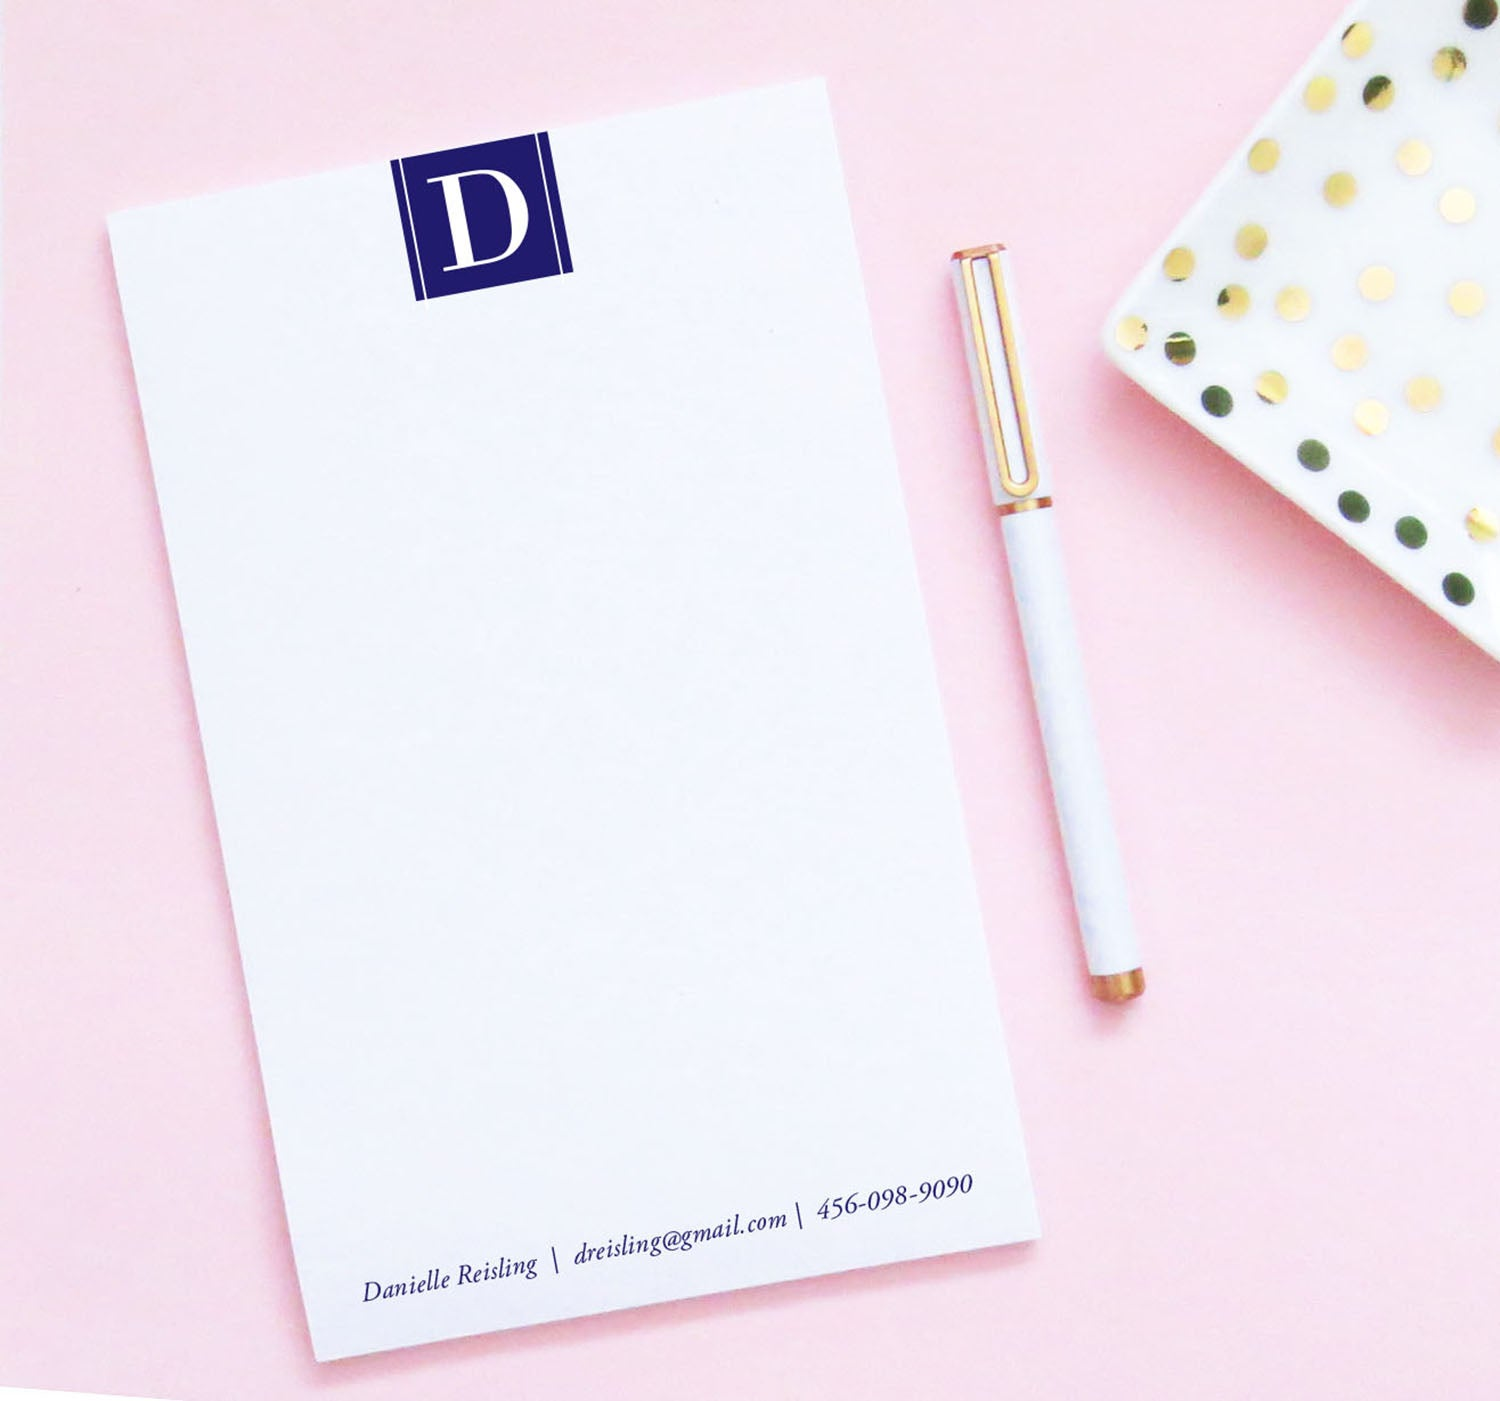 NP100 personalized business 1 letter monogram notepad set business professional